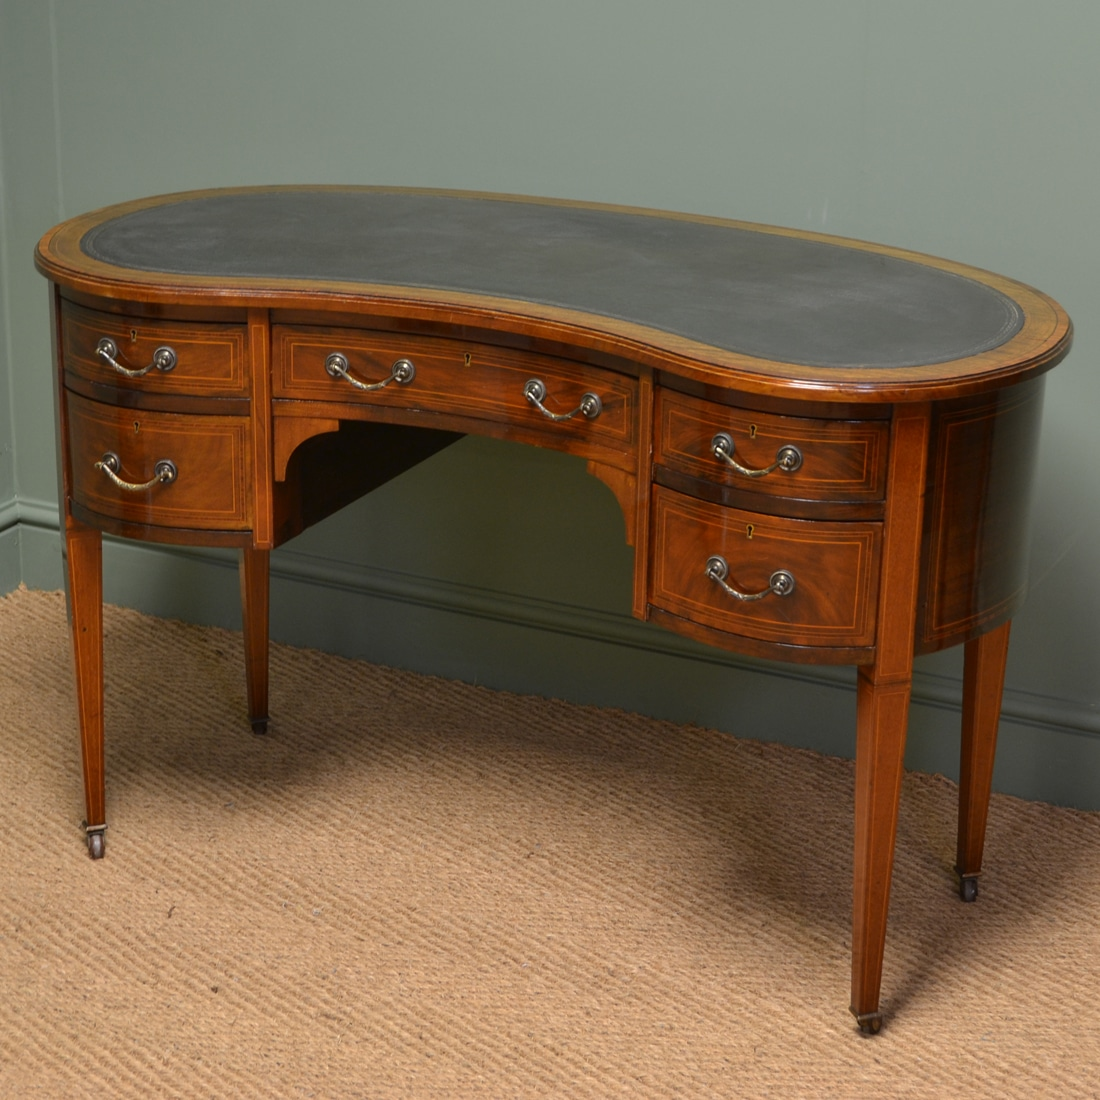 Beautiful Inlaid Victorian Mahogany Antique Kidney Shaped